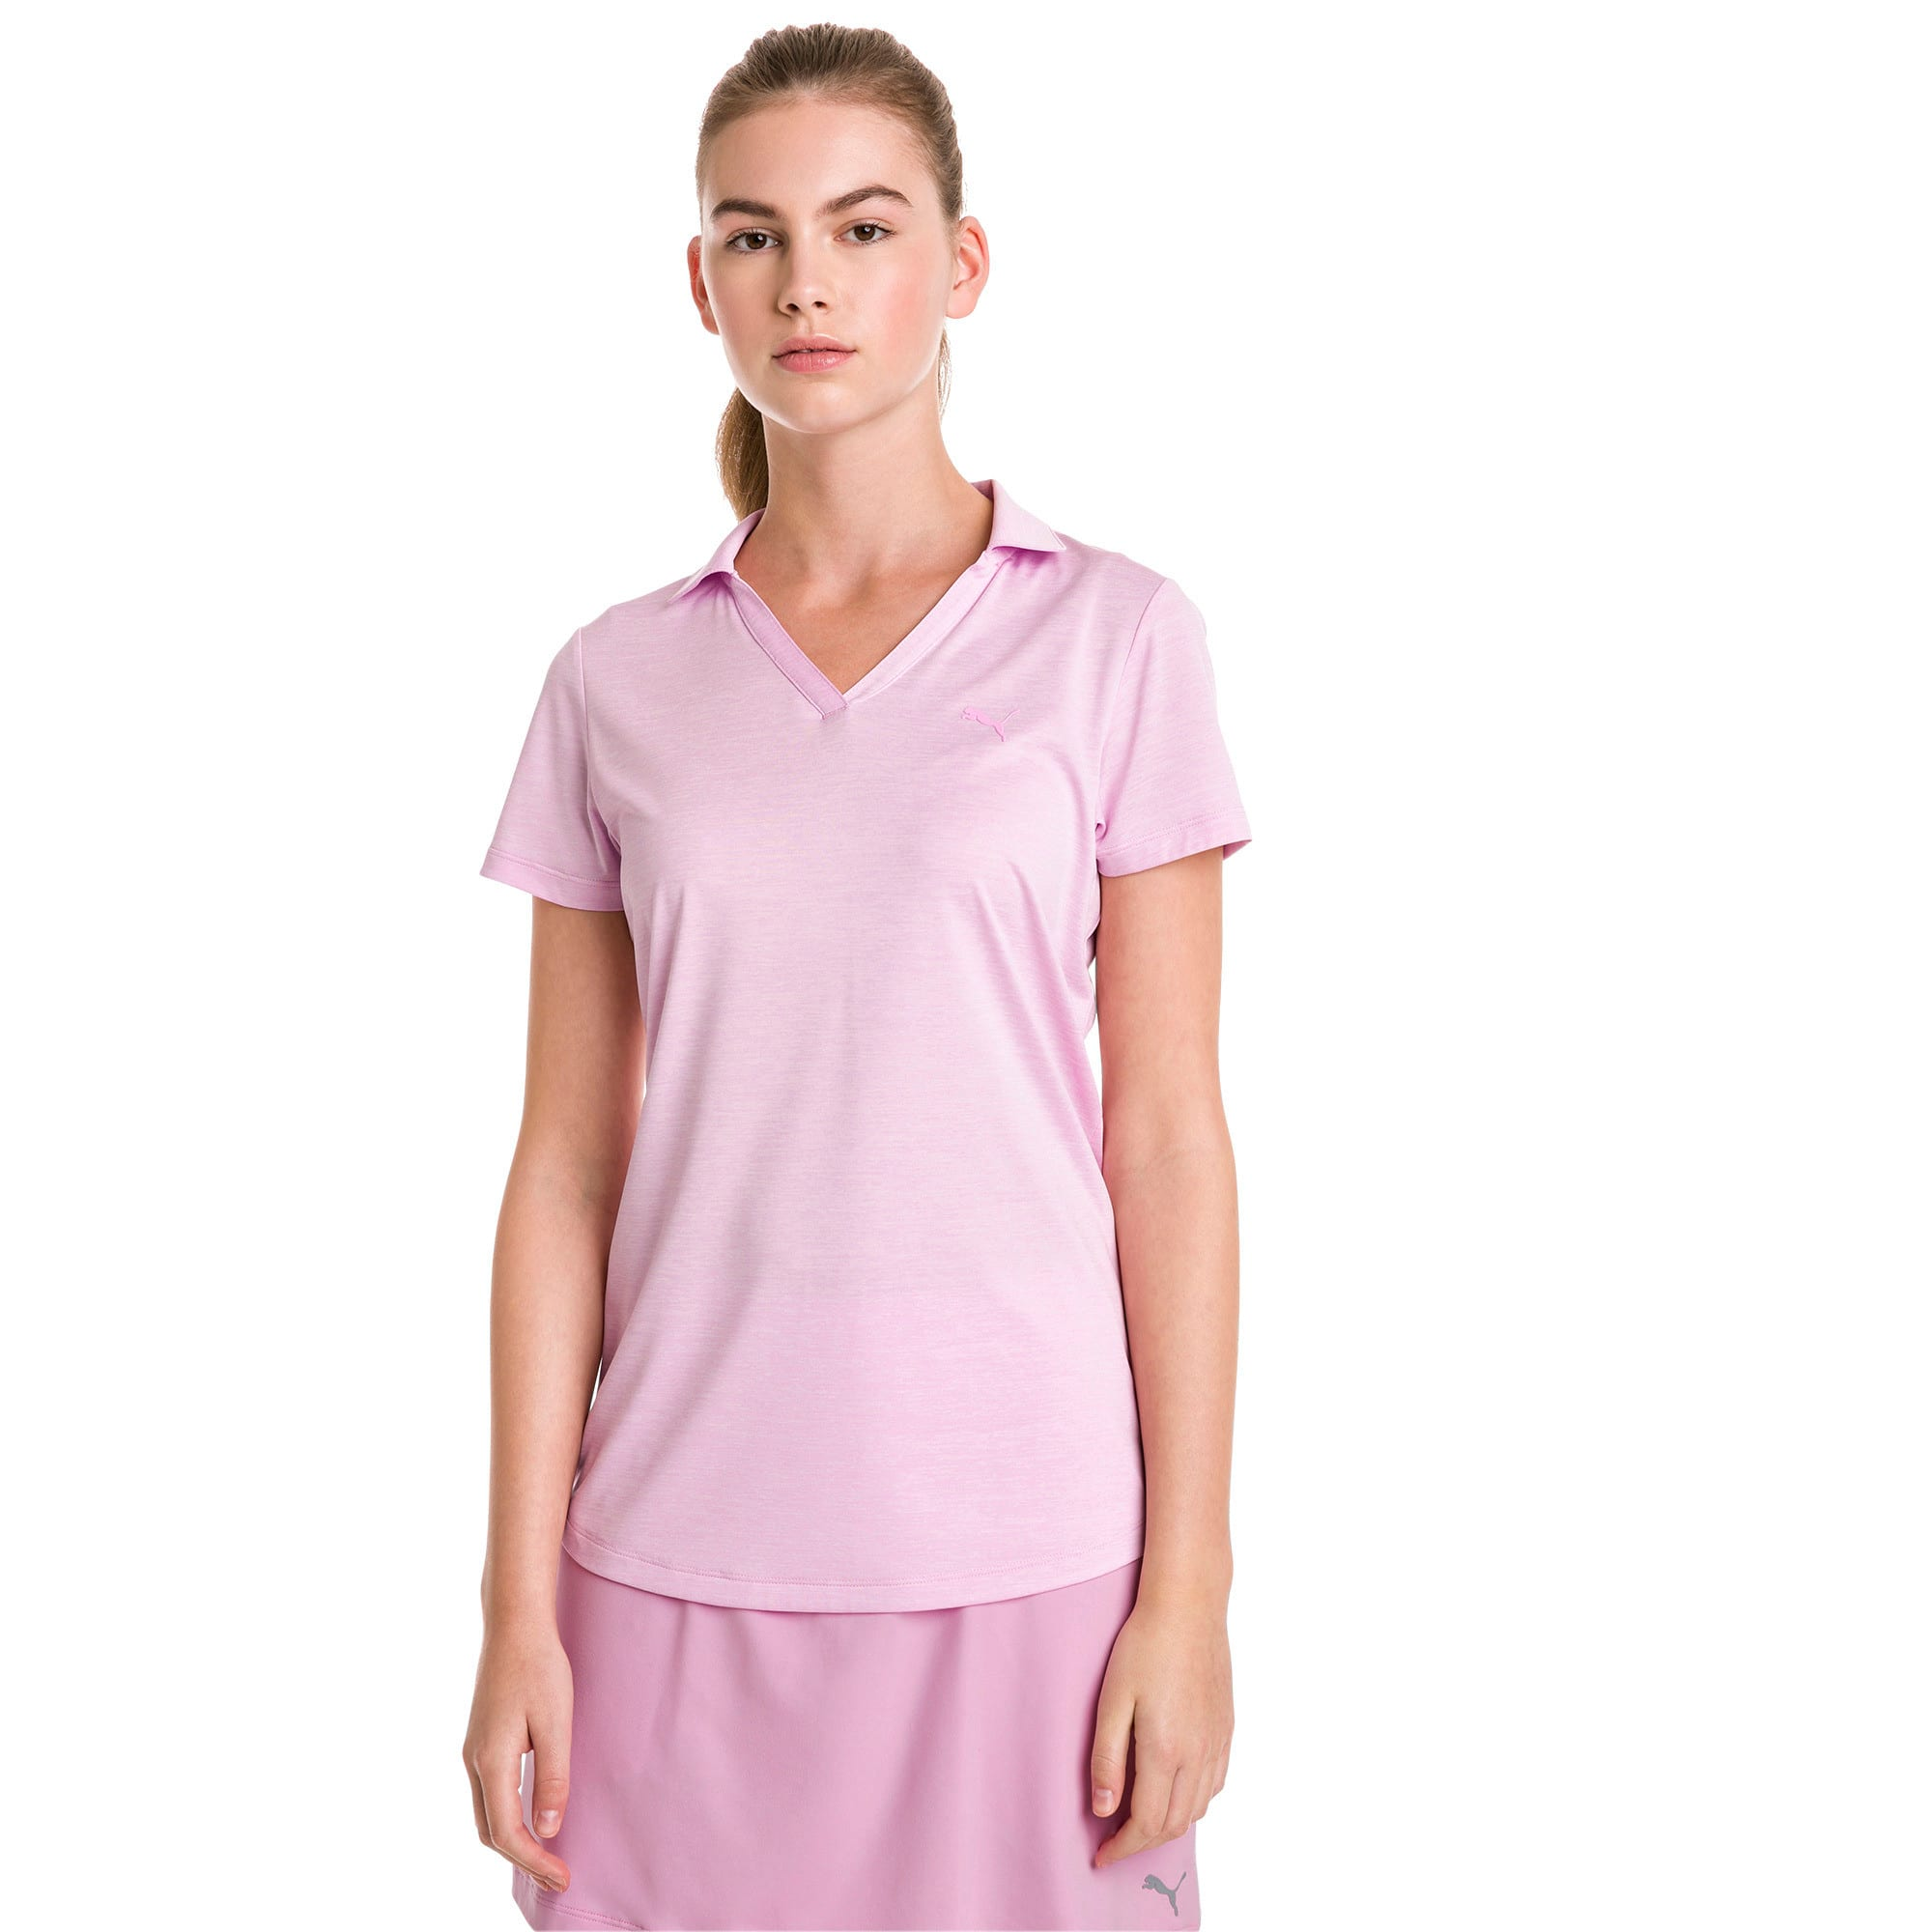 Thumbnail 1 of Super Soft Women's Golf Polo, Pale Pink Heather, medium